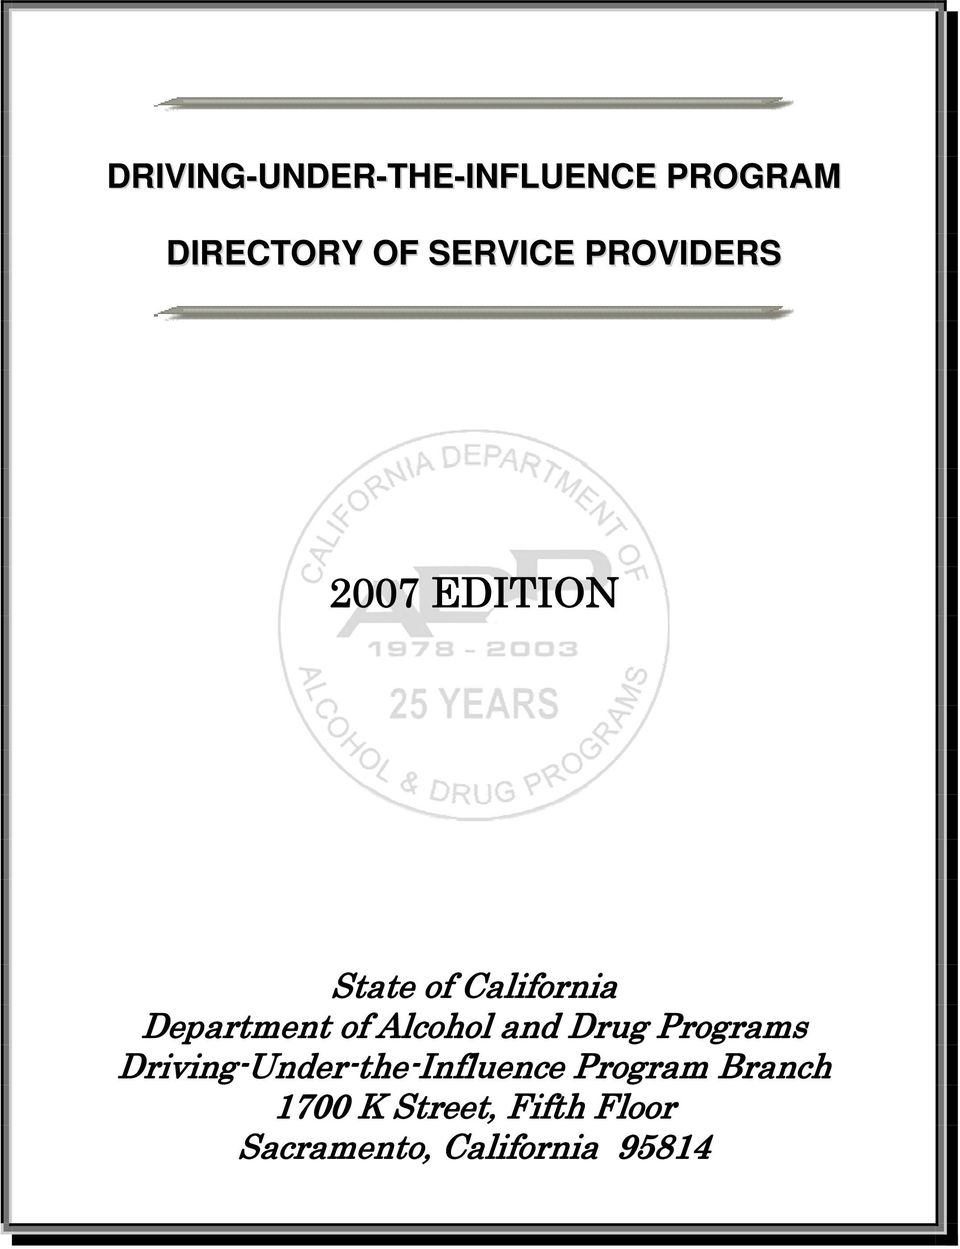 Driving-Under-the-Influence Program Branch